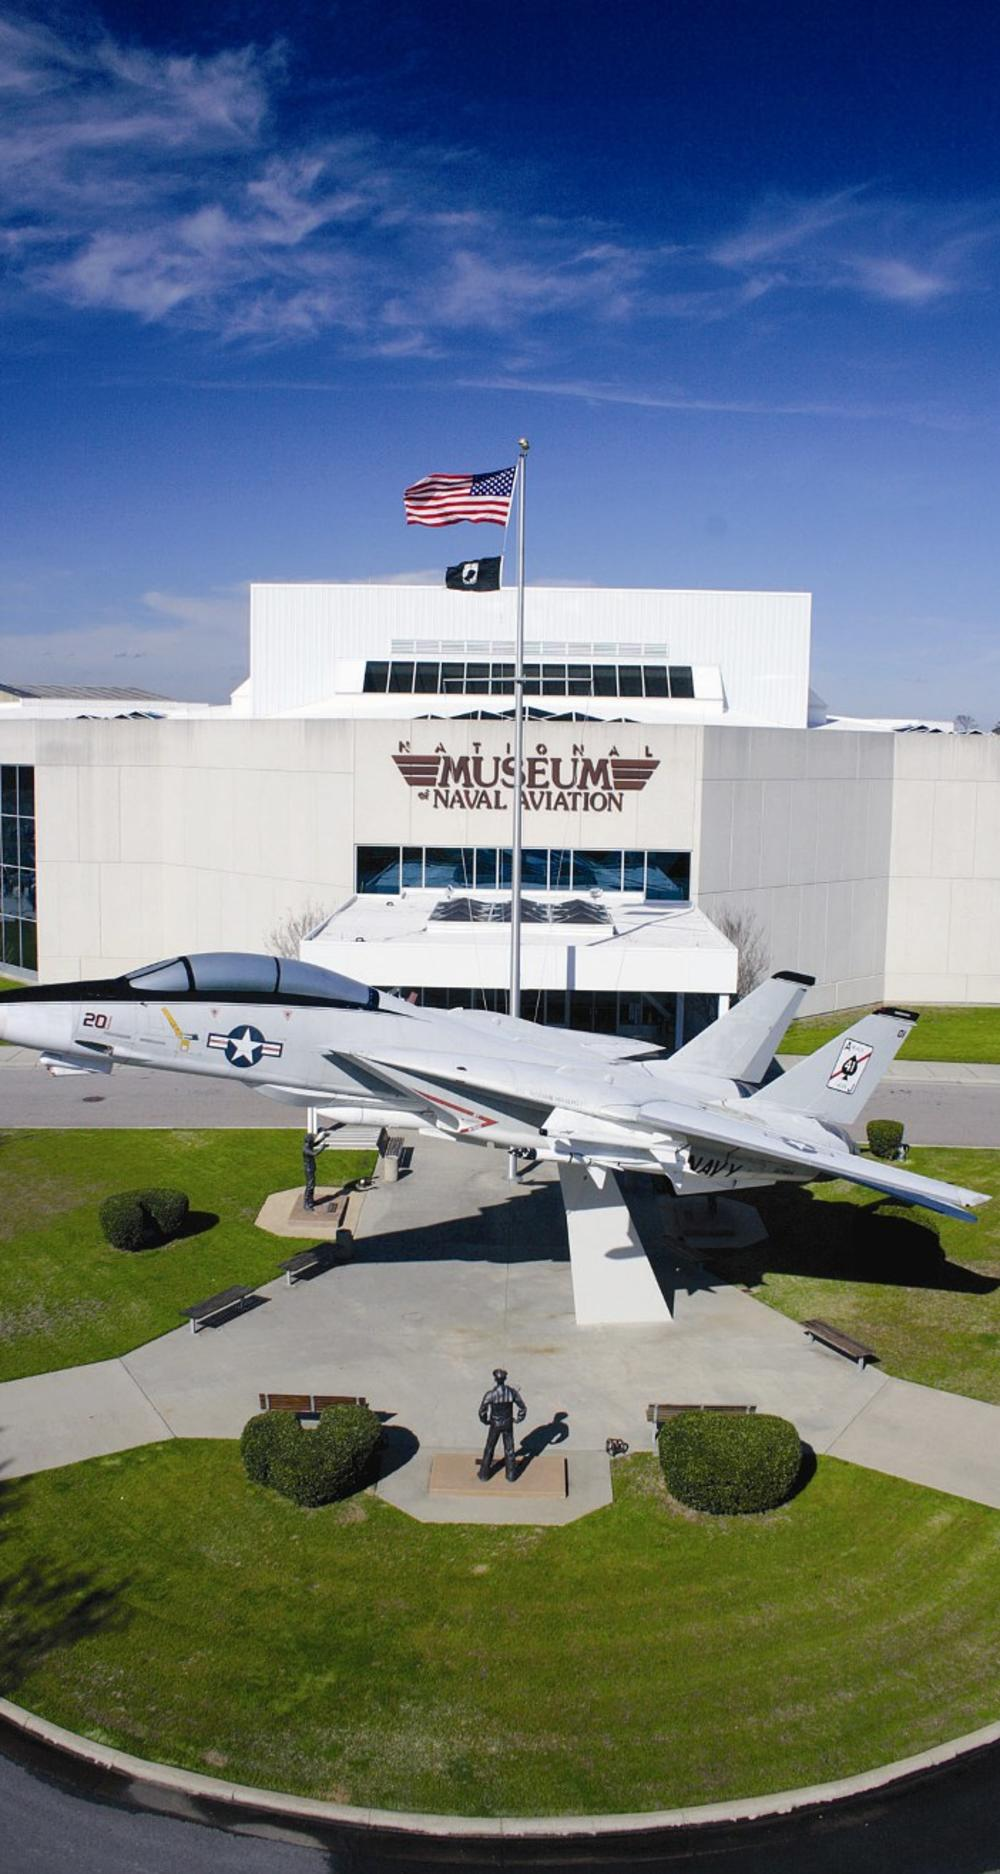 The Naval Aviation Museum and the headquarters of the Blue Angels are located in the Naval Air Station in Pensacola.